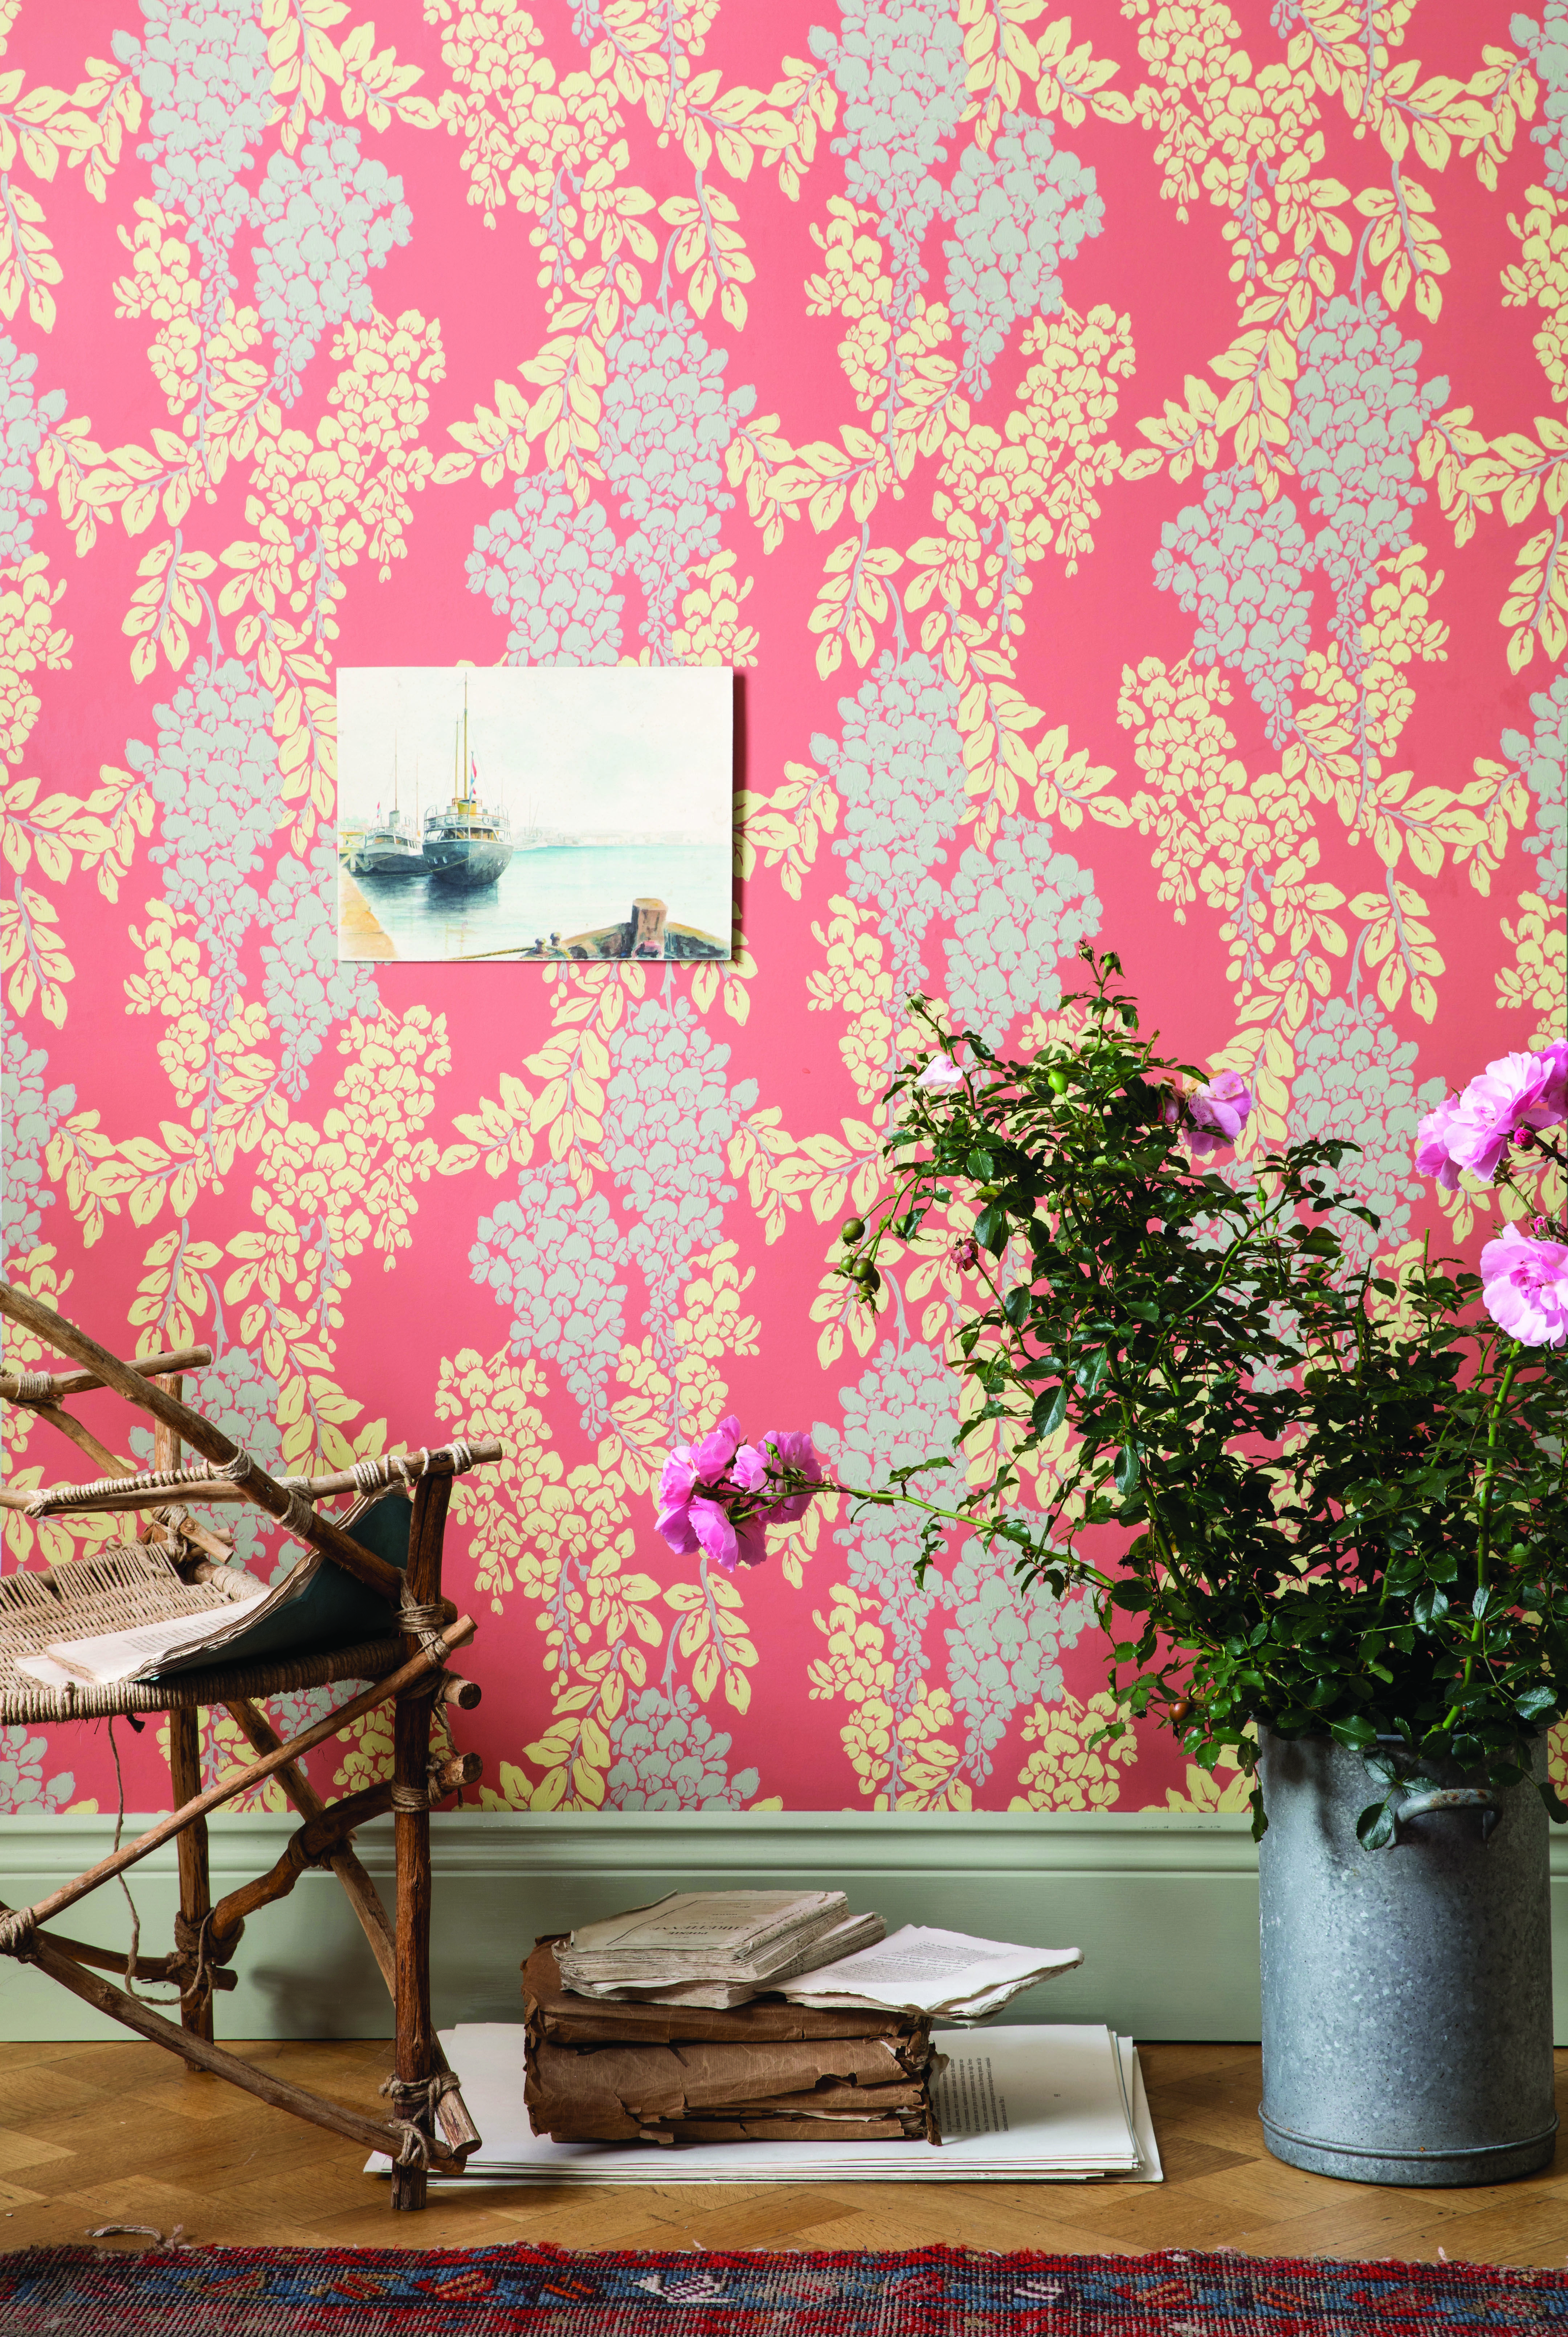 Farrow Ball Craftsmen In Paint And Paper Farrow Ball Farrow Ball Painting Wallpaper Craftsman